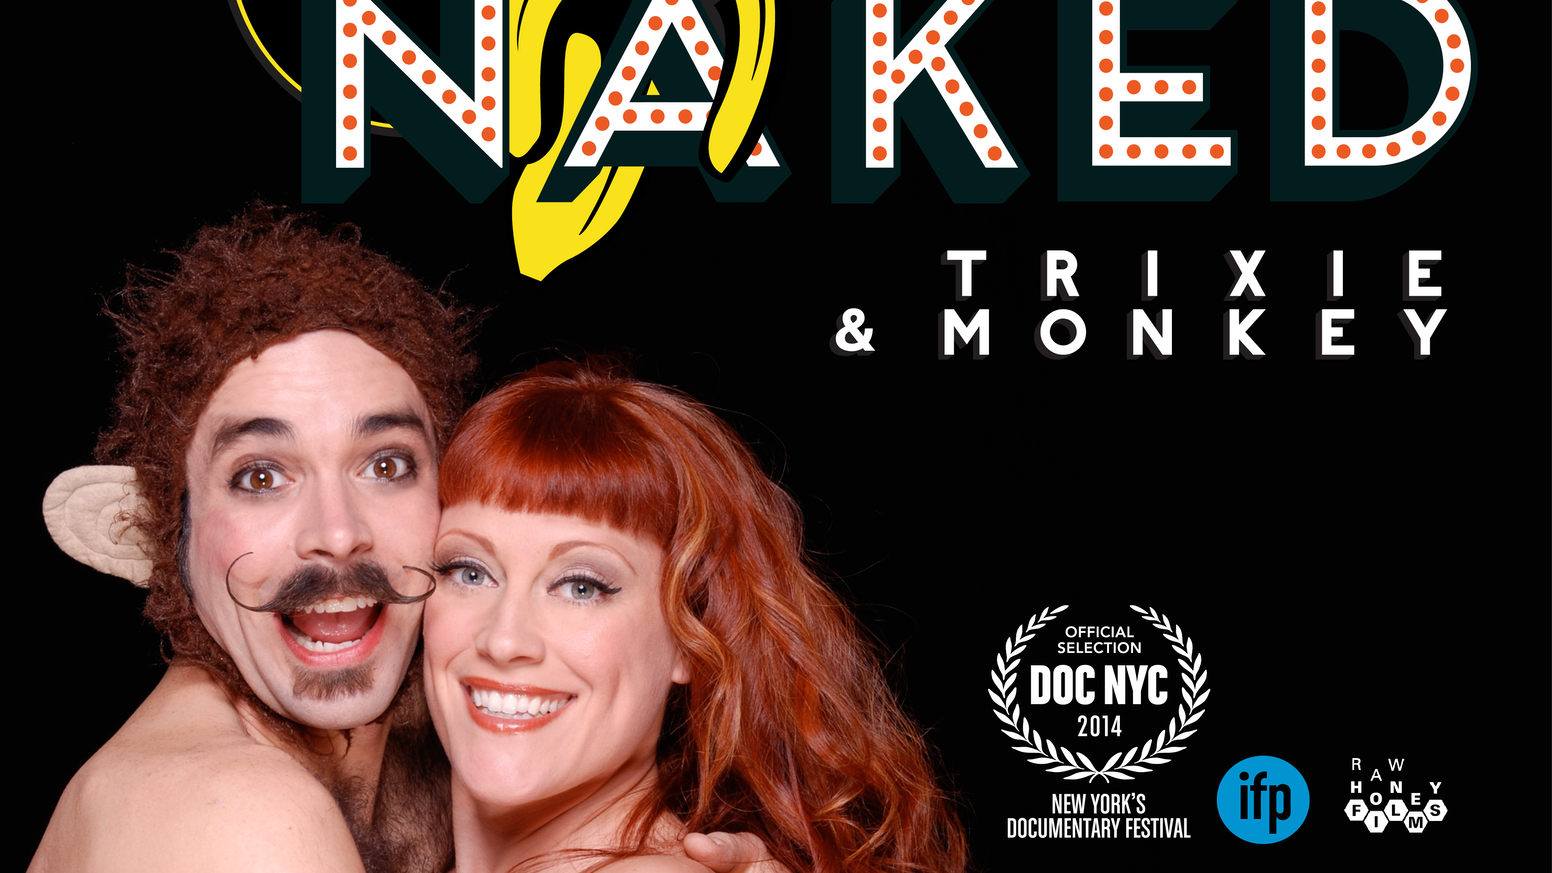 Us, Naked: Trixie & Monkey Q&A with Kirsten DAndrea